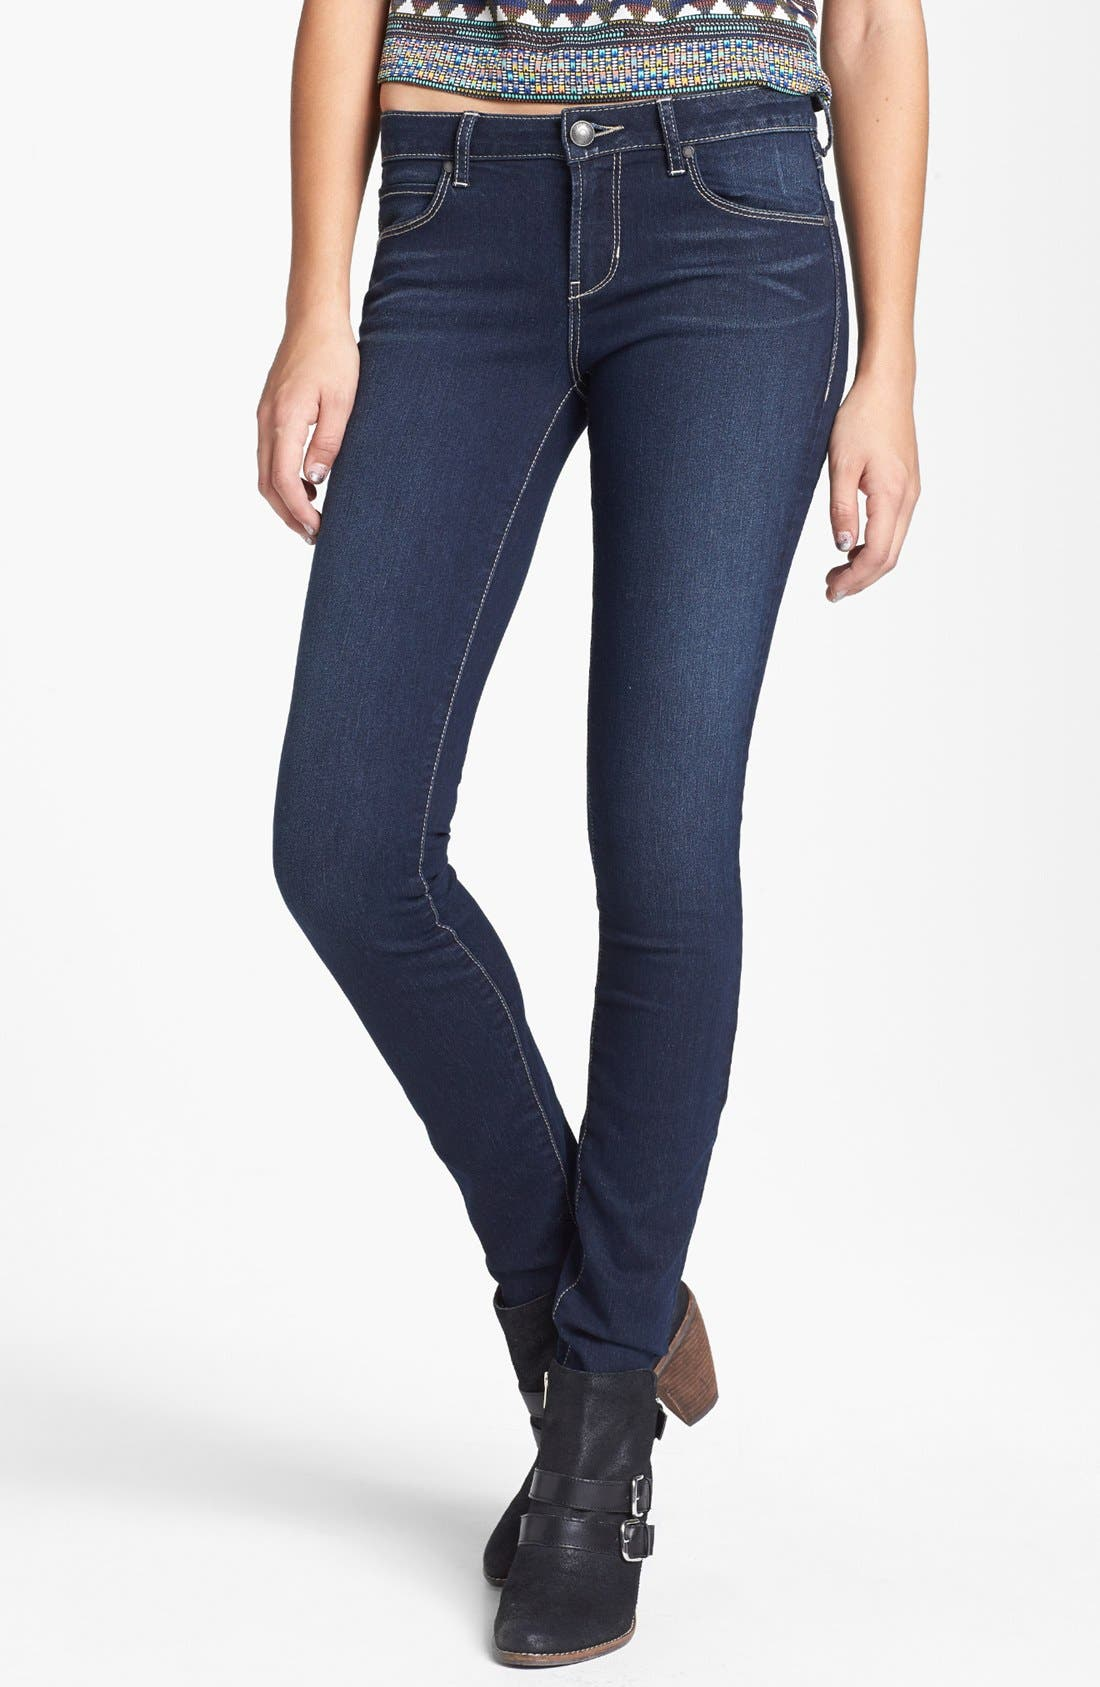 Alternate Image 1 Selected - Articles of Society 'Mya Abyss' Skinny Jeans (Dark) (Juniors)